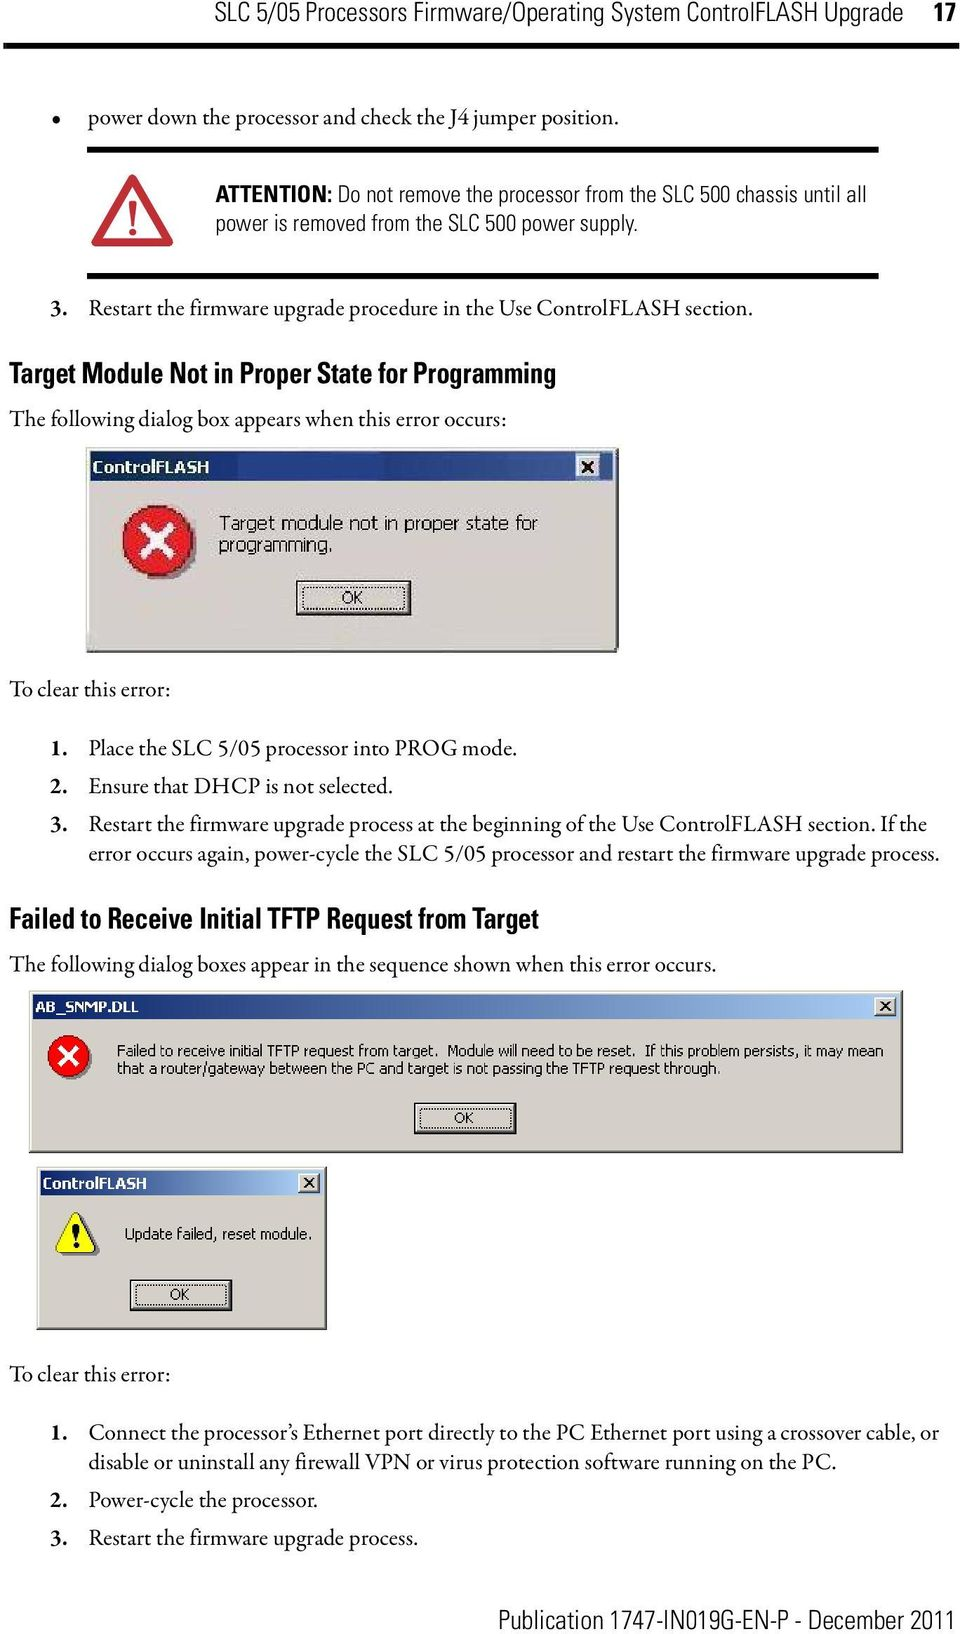 Target Module Not in Proper State for Programming The following dialog box appears when this error occurs: To clear this error: 1. Place the SLC 5/05 processor into PROG mode. 2.